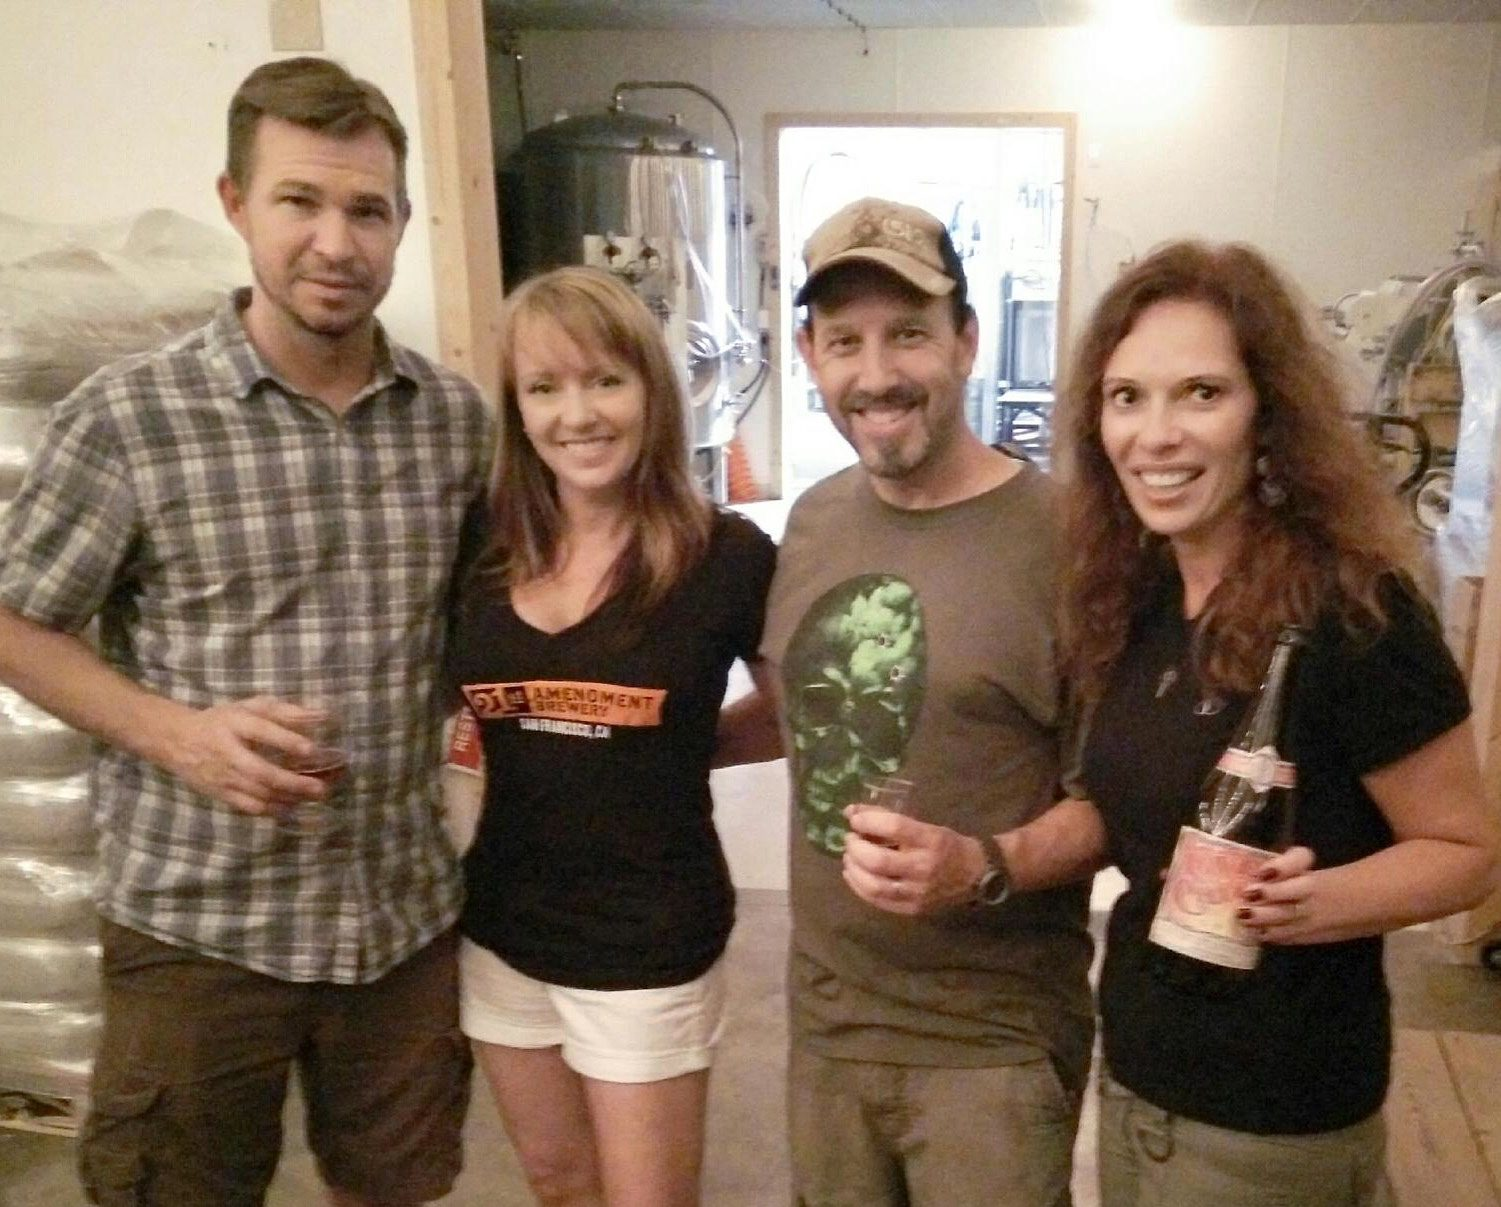 The Founders and Owners of Craft Beer Austin